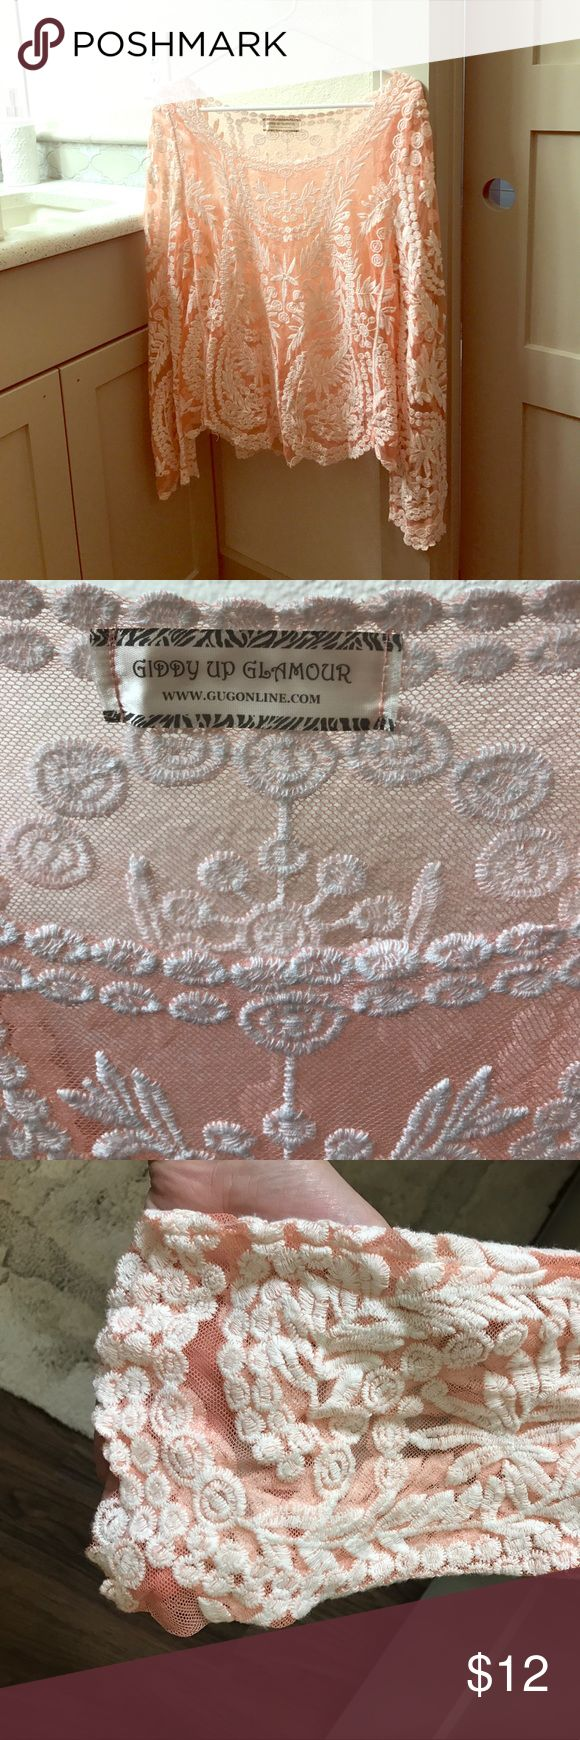 Light Pink and Cream Lace Top Beautiful light pink and cream lace top with slightly flared long sleeves and open neckline. Never worn! Giddy Up Glamour Tops Blouses